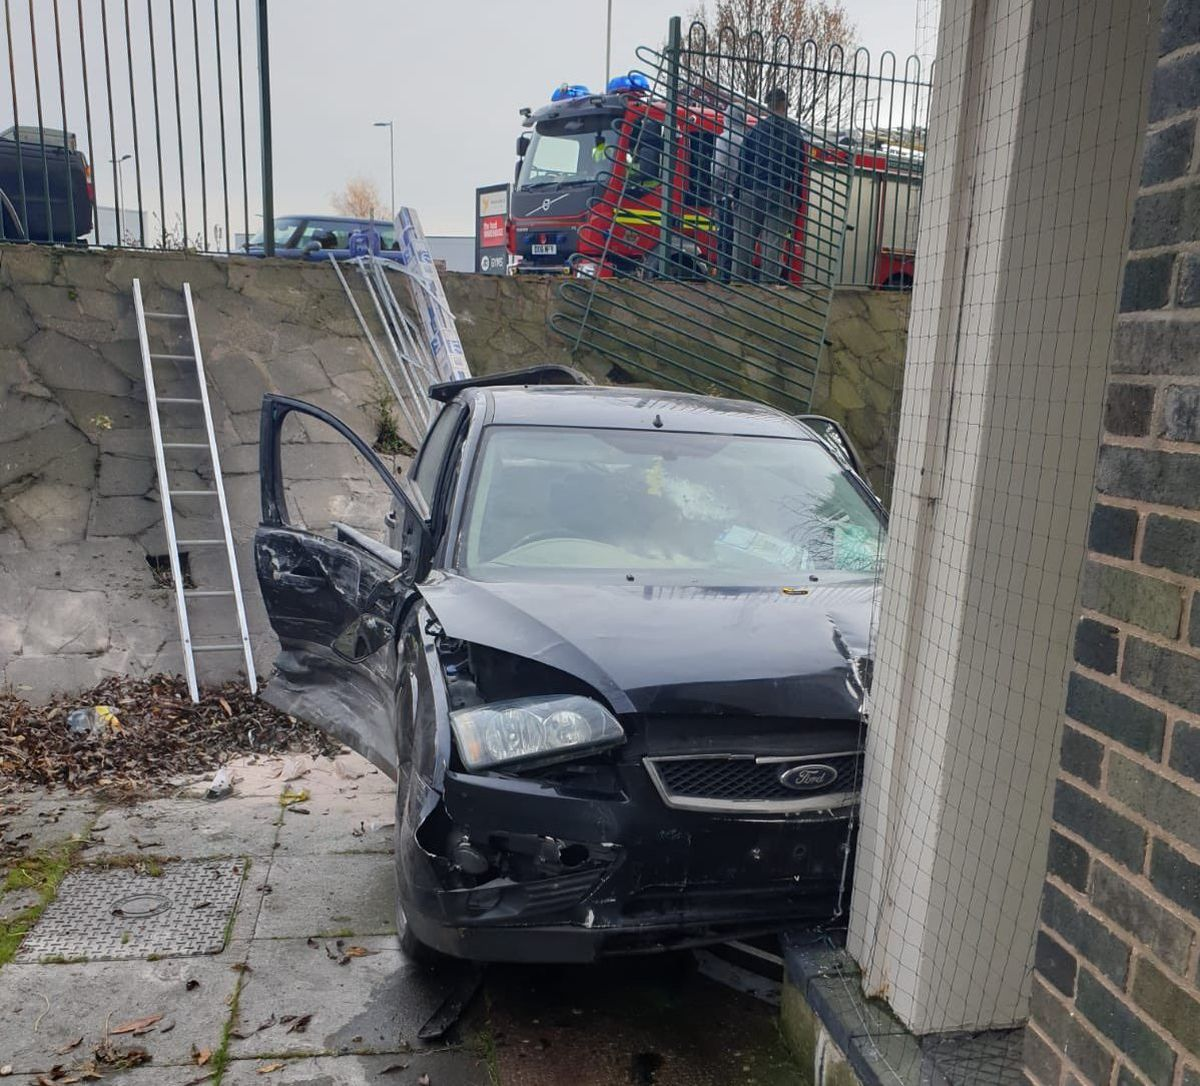 Police, paramedics and firefighters were all at the scene. Photo: Wolverhampton Fire